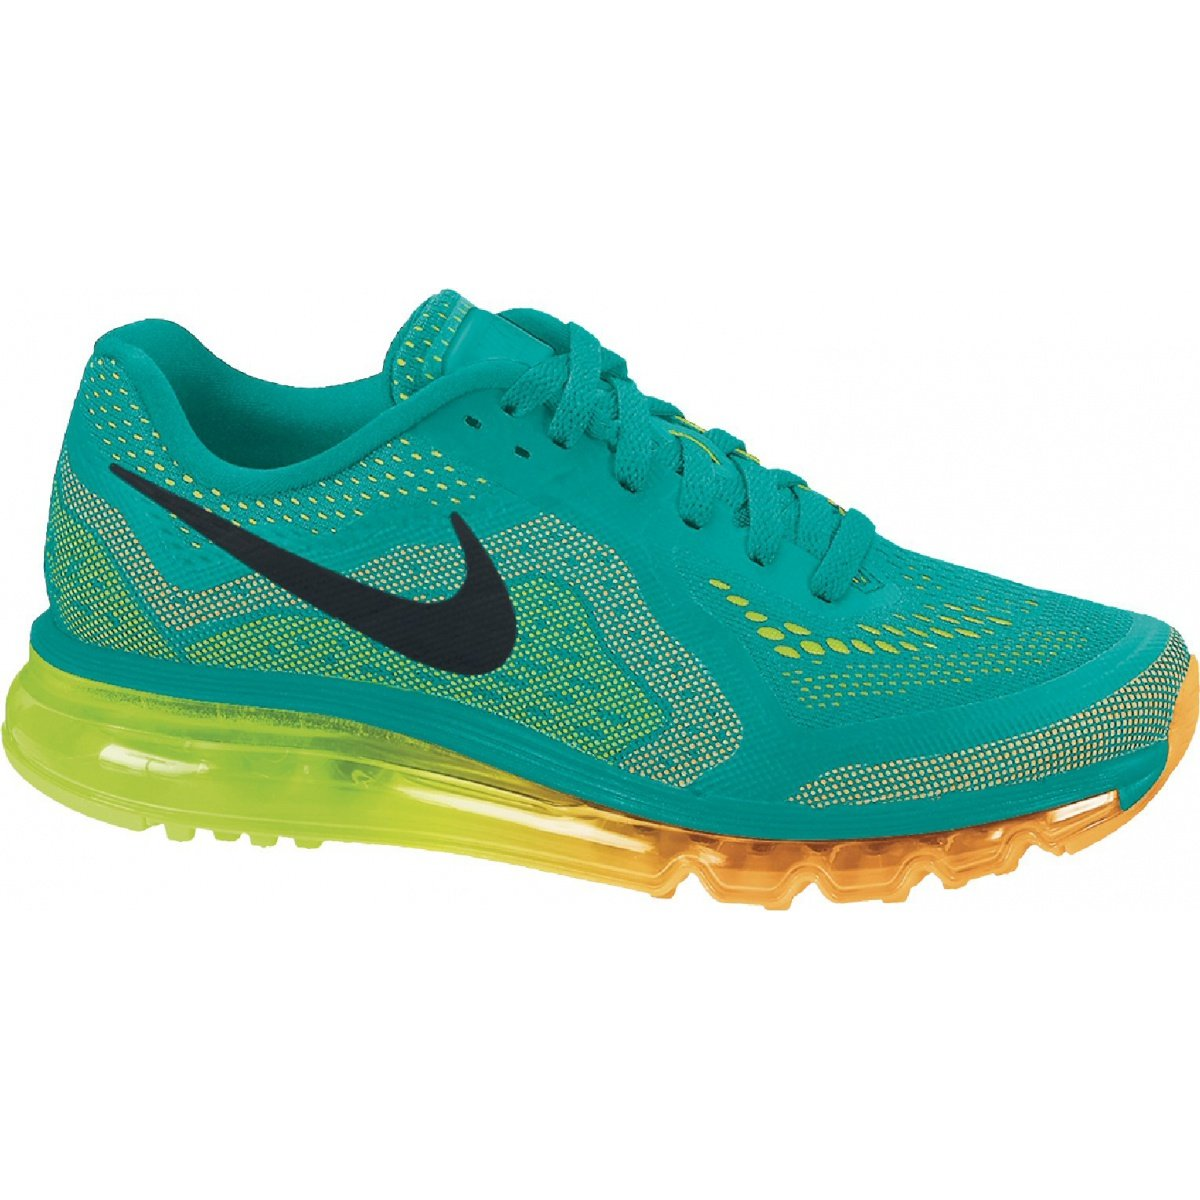 Nike Air Max 2014 Laufschuhe Damen Pink/Orange